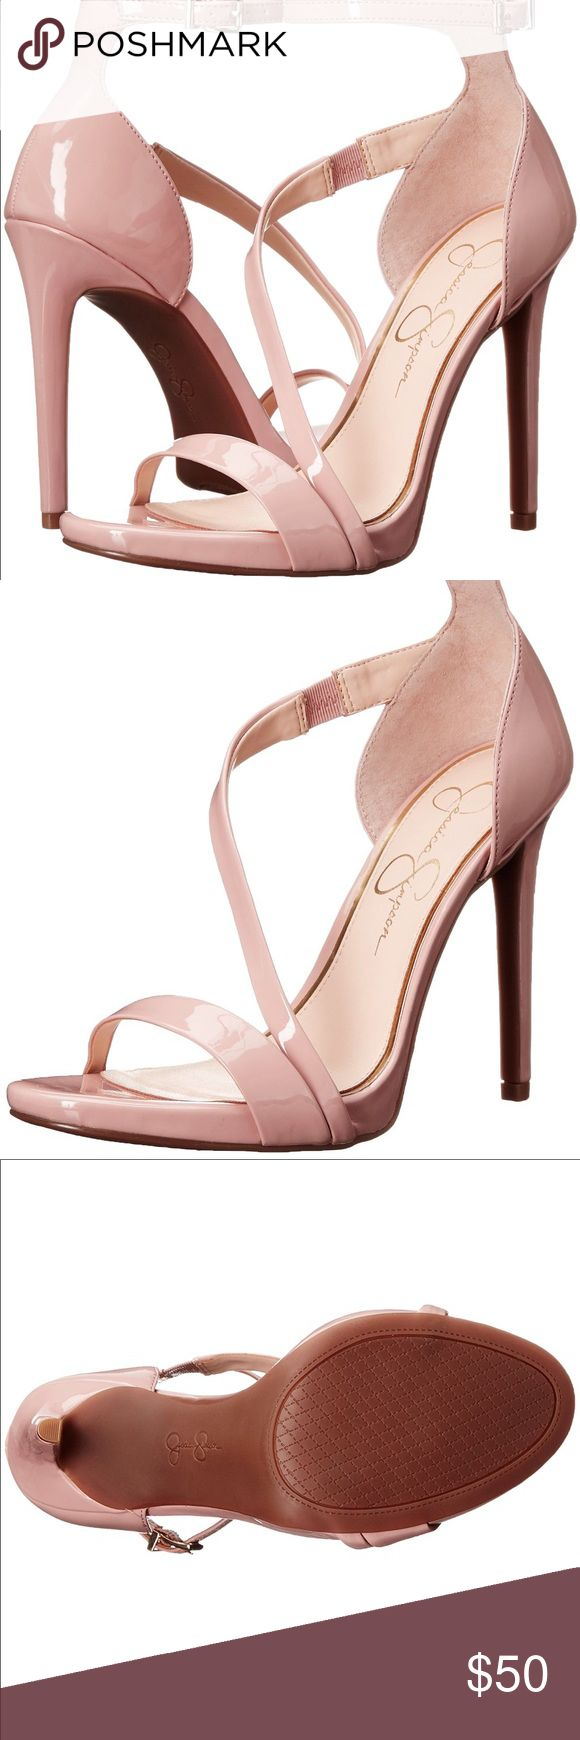 "Just InJessica Simpson Rayli Nude Blush Heels NWOBJessica Simpson Rayli Heels is a gorgeous strappy dress shoe with an adjustable ankle strap for a secure fit. Heel Height: 4"" Front Height: 1/4""  Synthetic Patent Rubber sole Memory foam Metal Buckle Asymmetrical strap Jessica Simpson Shoes Heels"